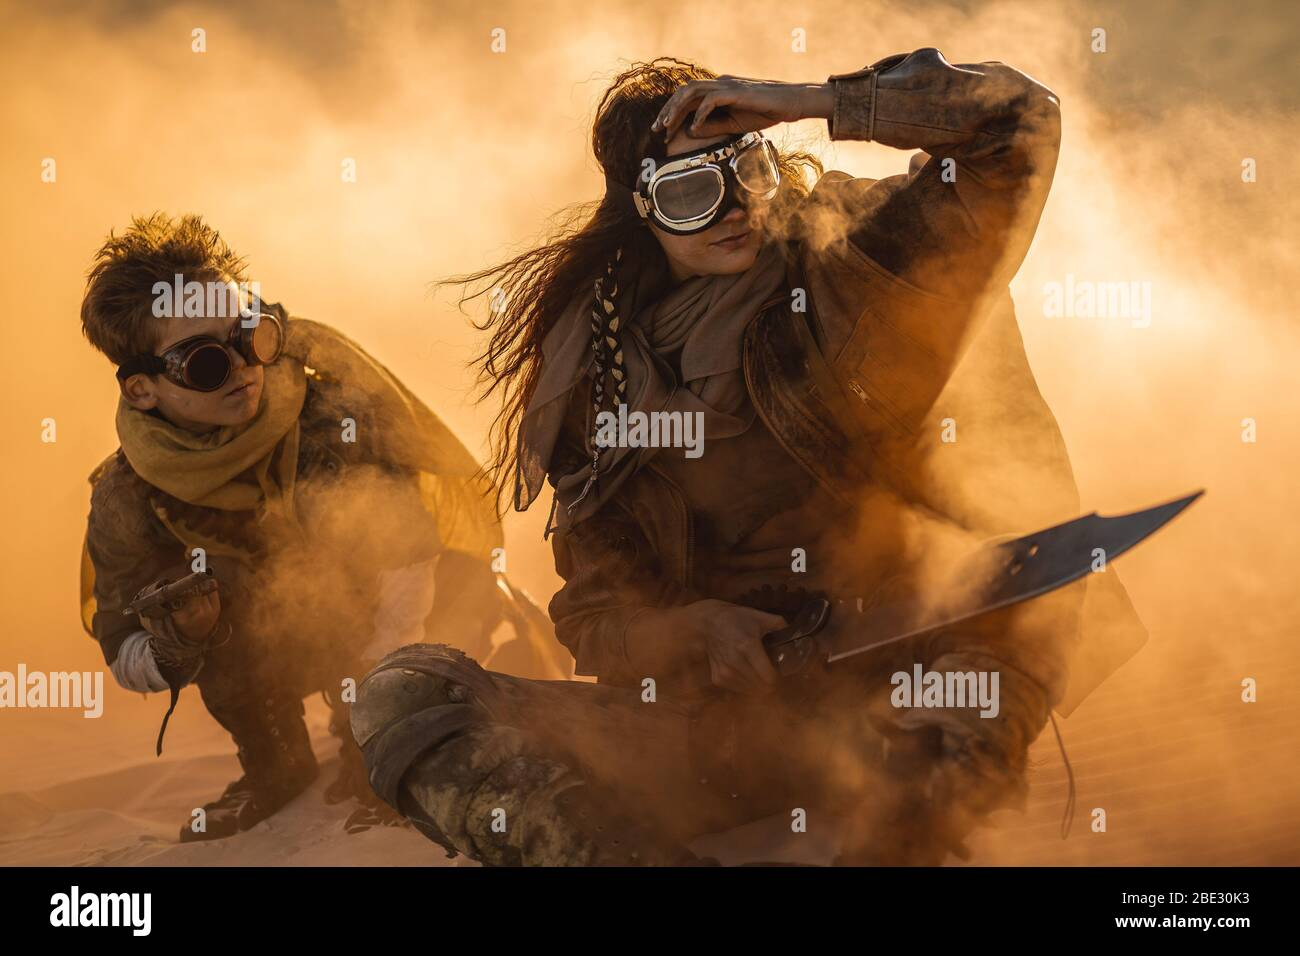 Post apocalyptic woman and boy with weapons outdoors. Desert in smoke and dead wasteland on the background. Aggressive girl warrior in shabby clothes holding sword and young boy with gun and chain sitting in a confident pose. Nuclear post-apocalypse time. Life after doomsday concept.